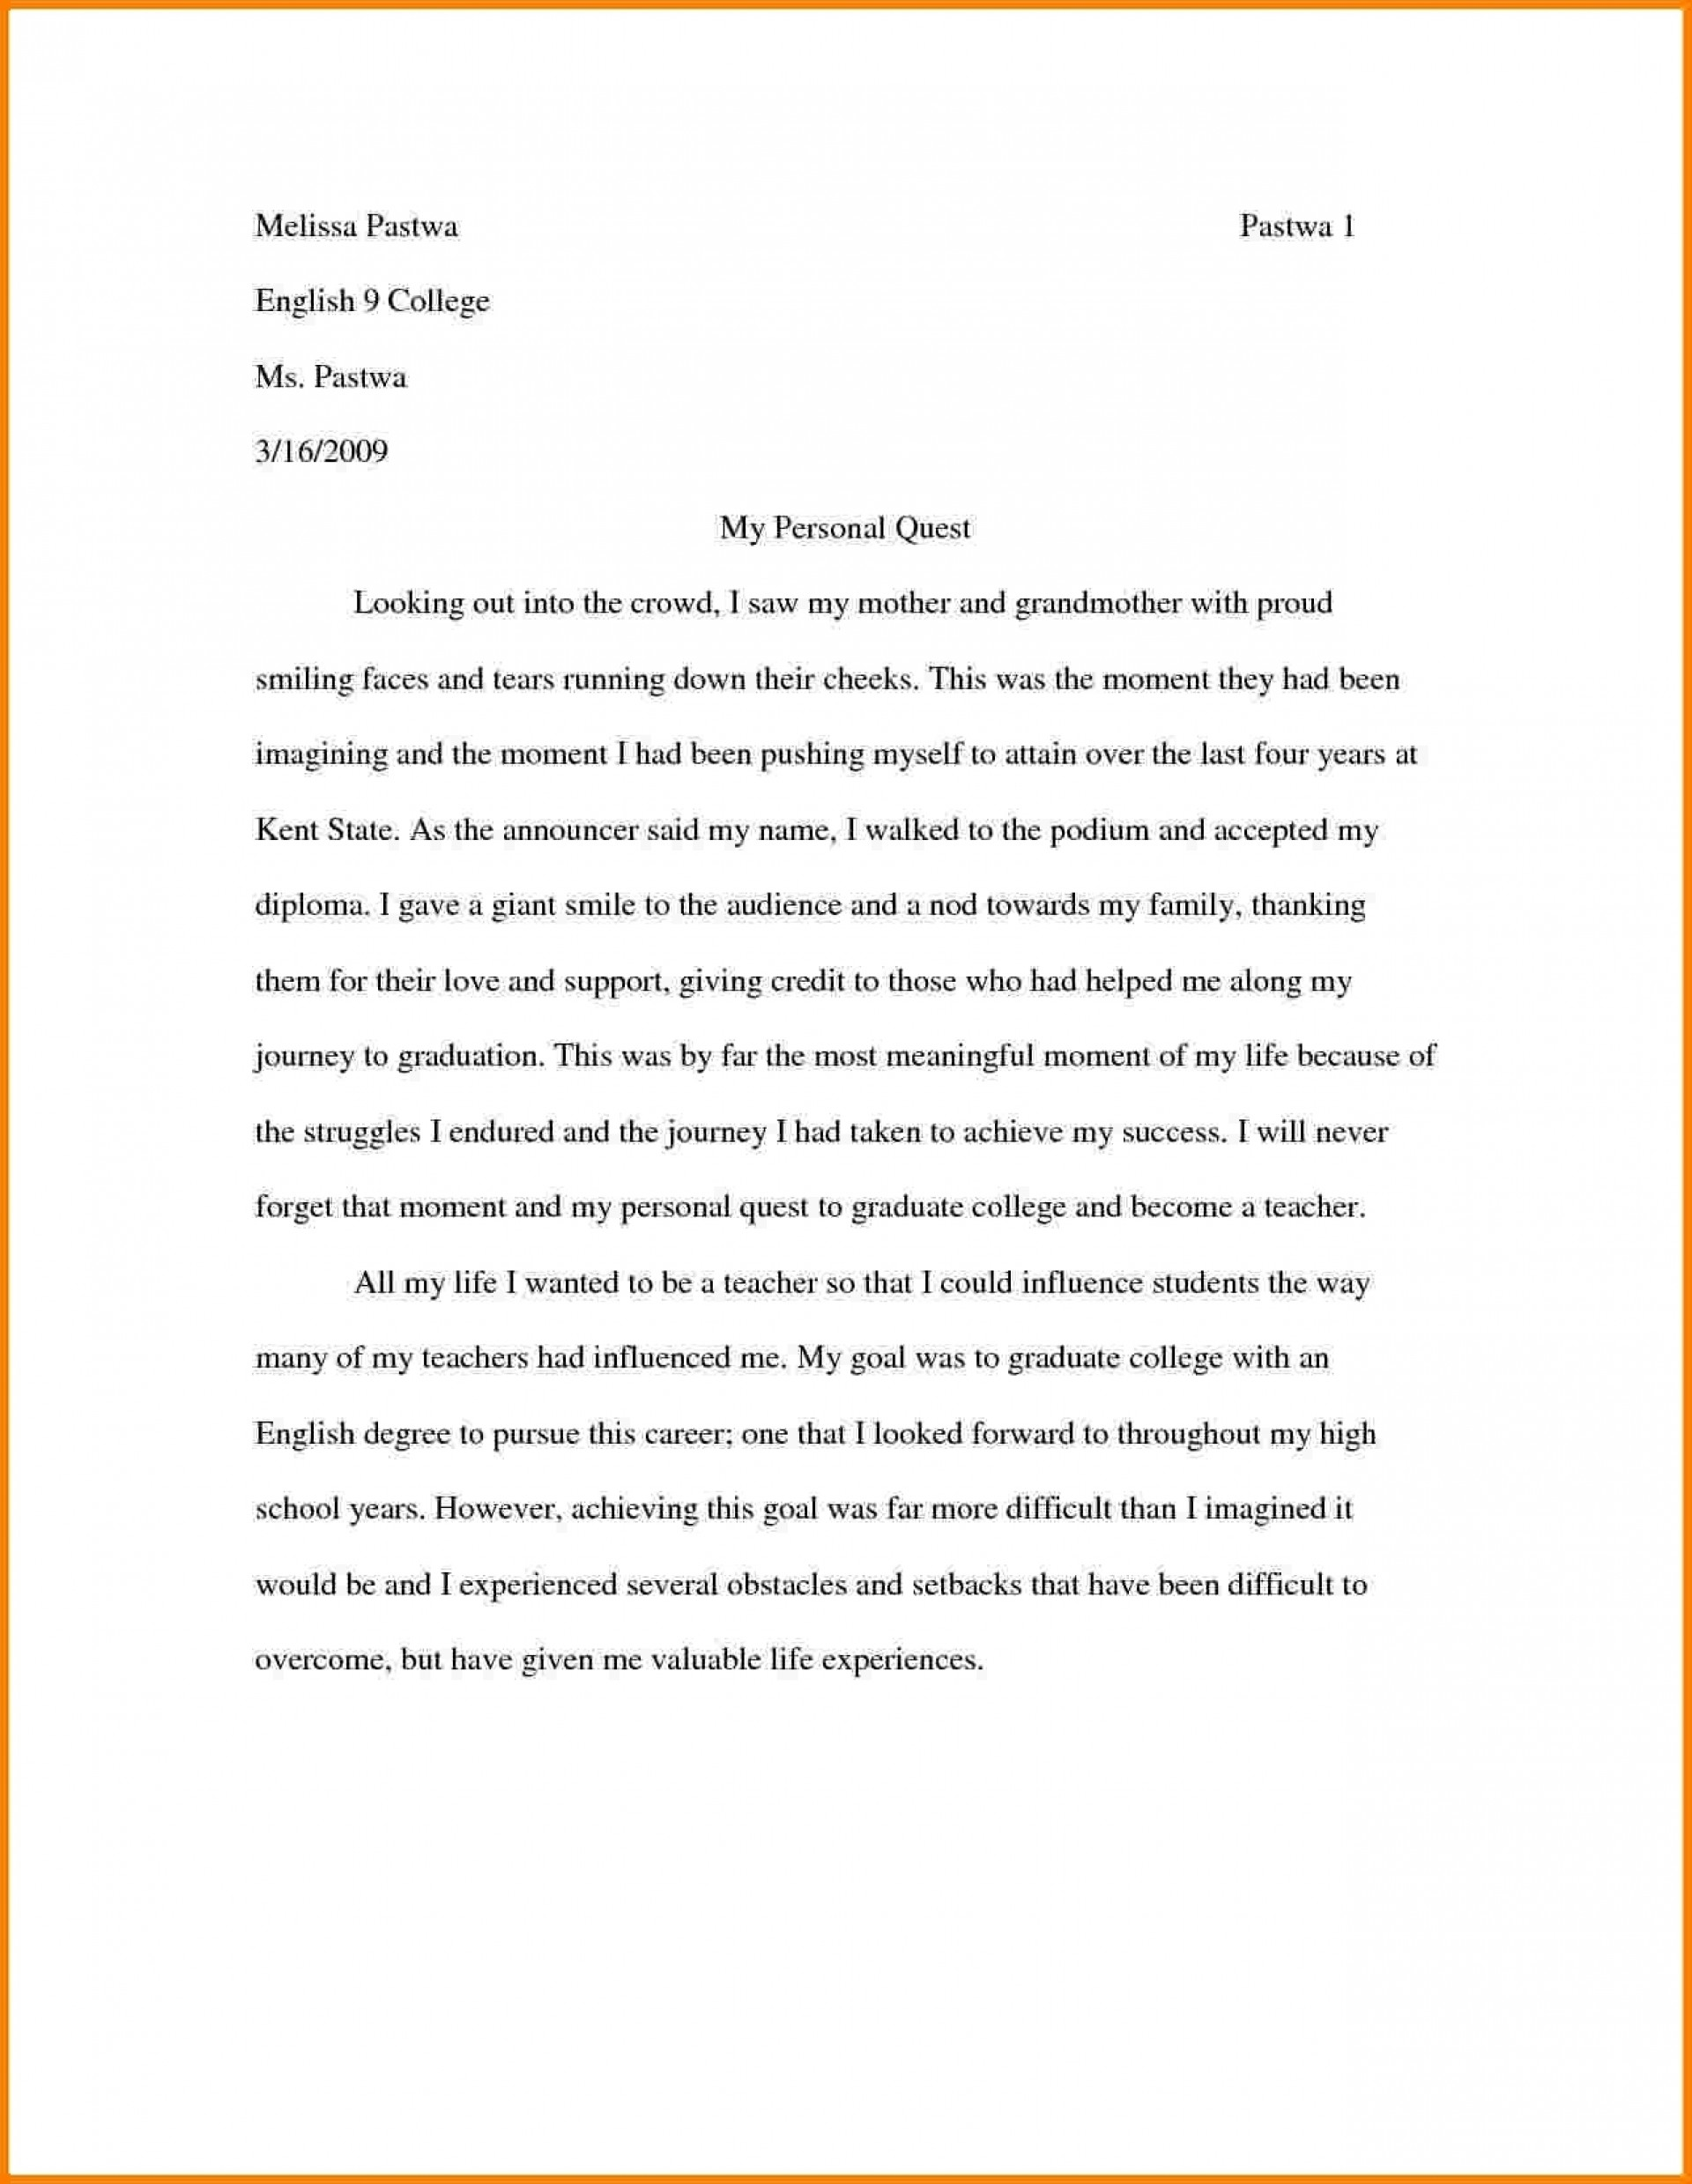 002 College Essays Essay Examples Writings And Application Example Of Philosophy Statement Case Best Frightening 2017 Texas Uc Prompts Pdf 1920